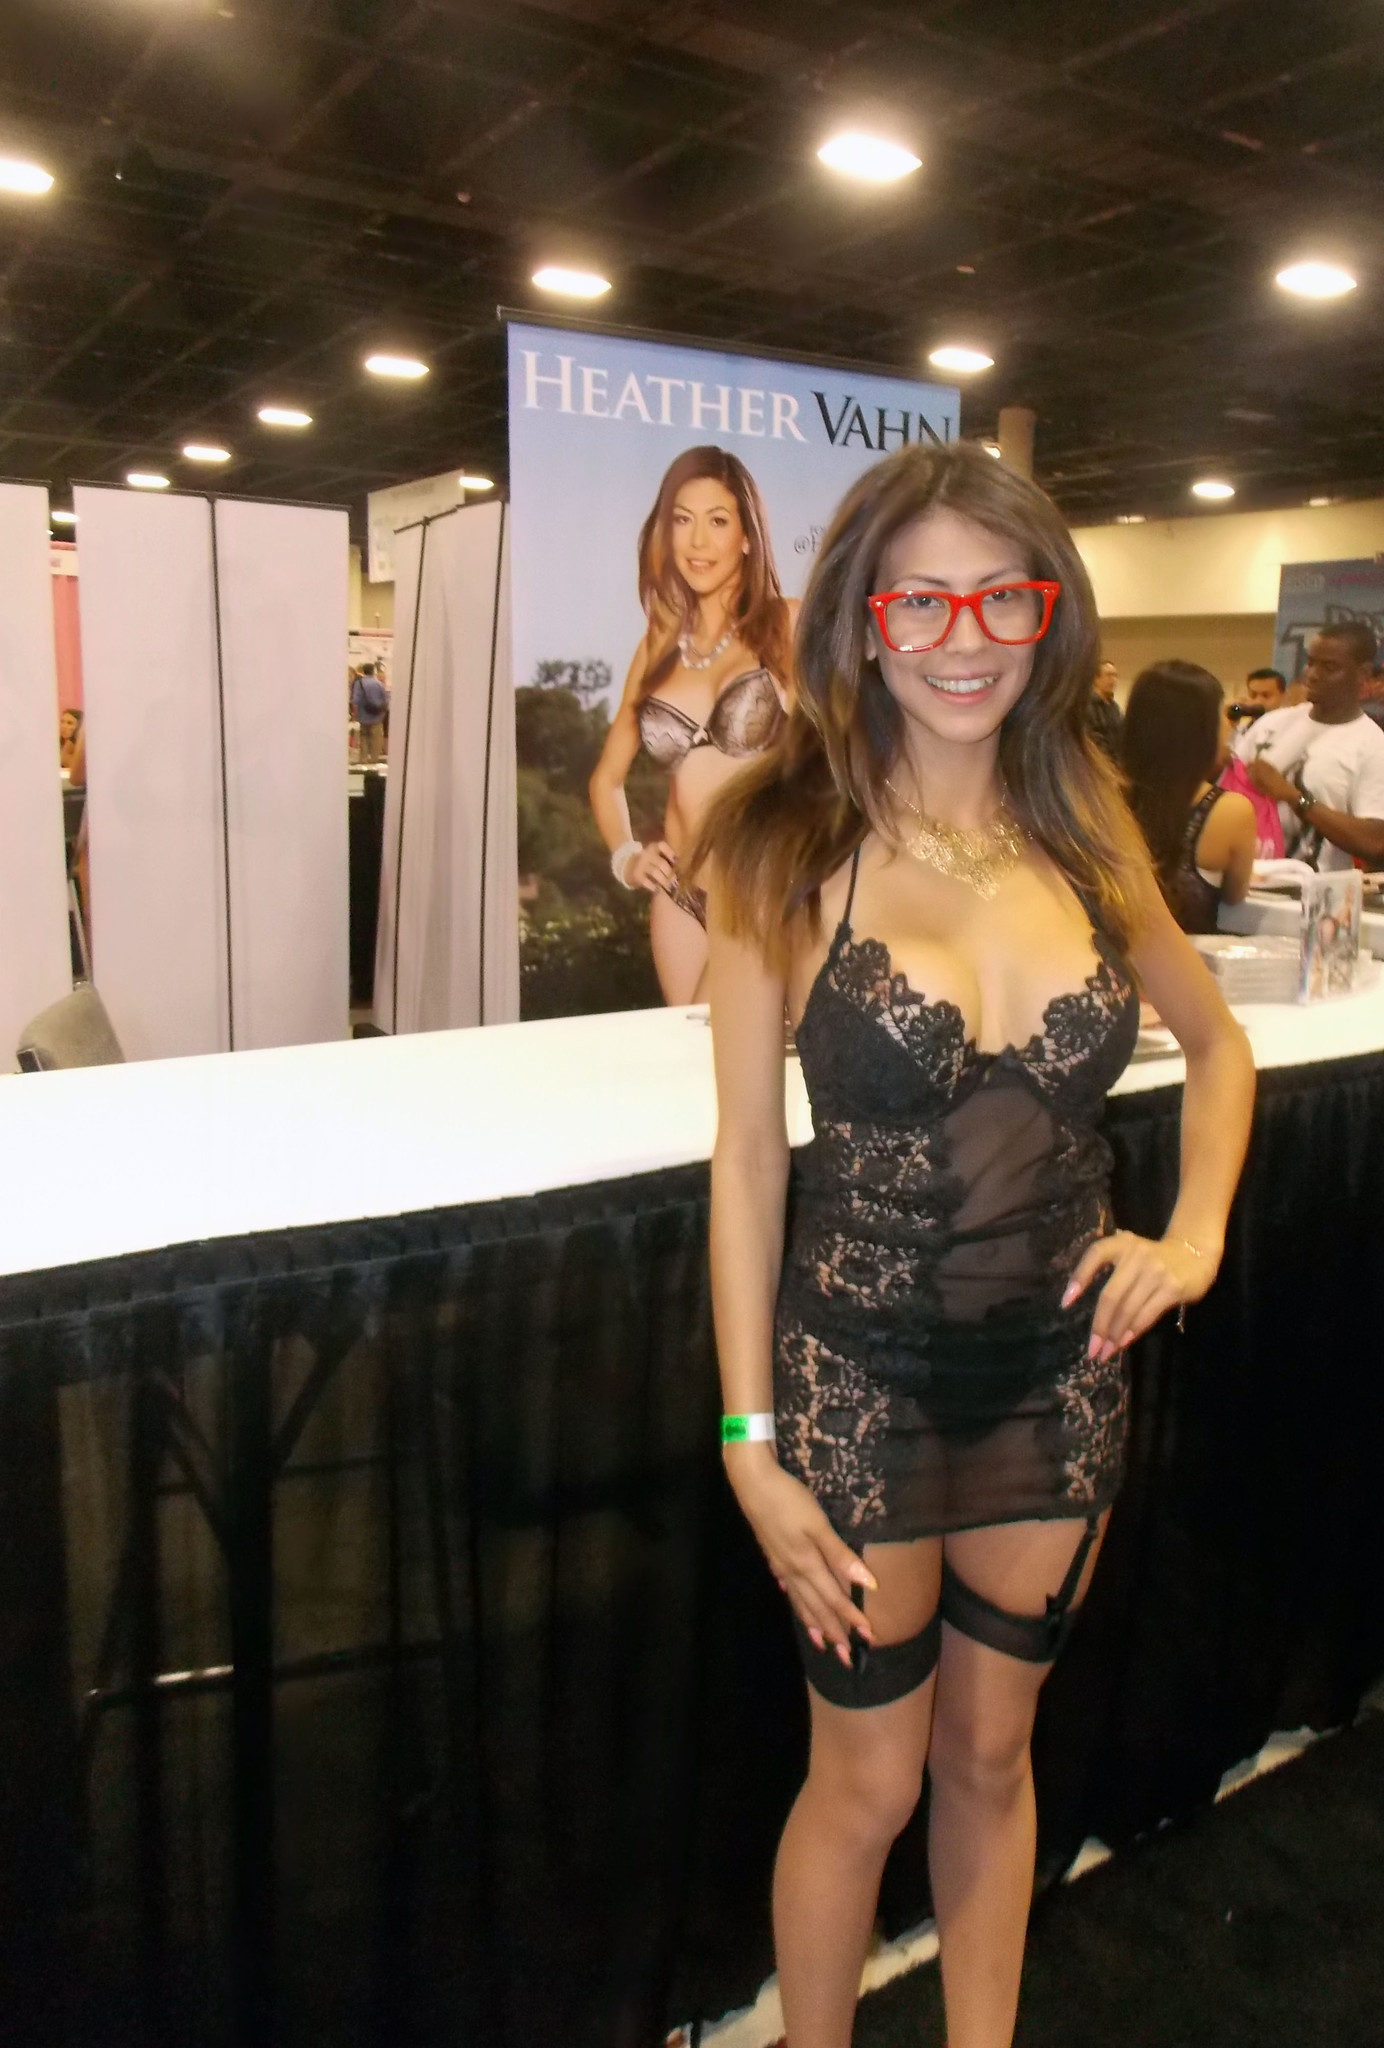 Photos: Exxxotica 2013 in Fort Lauderdale - Exxxotica Day 2